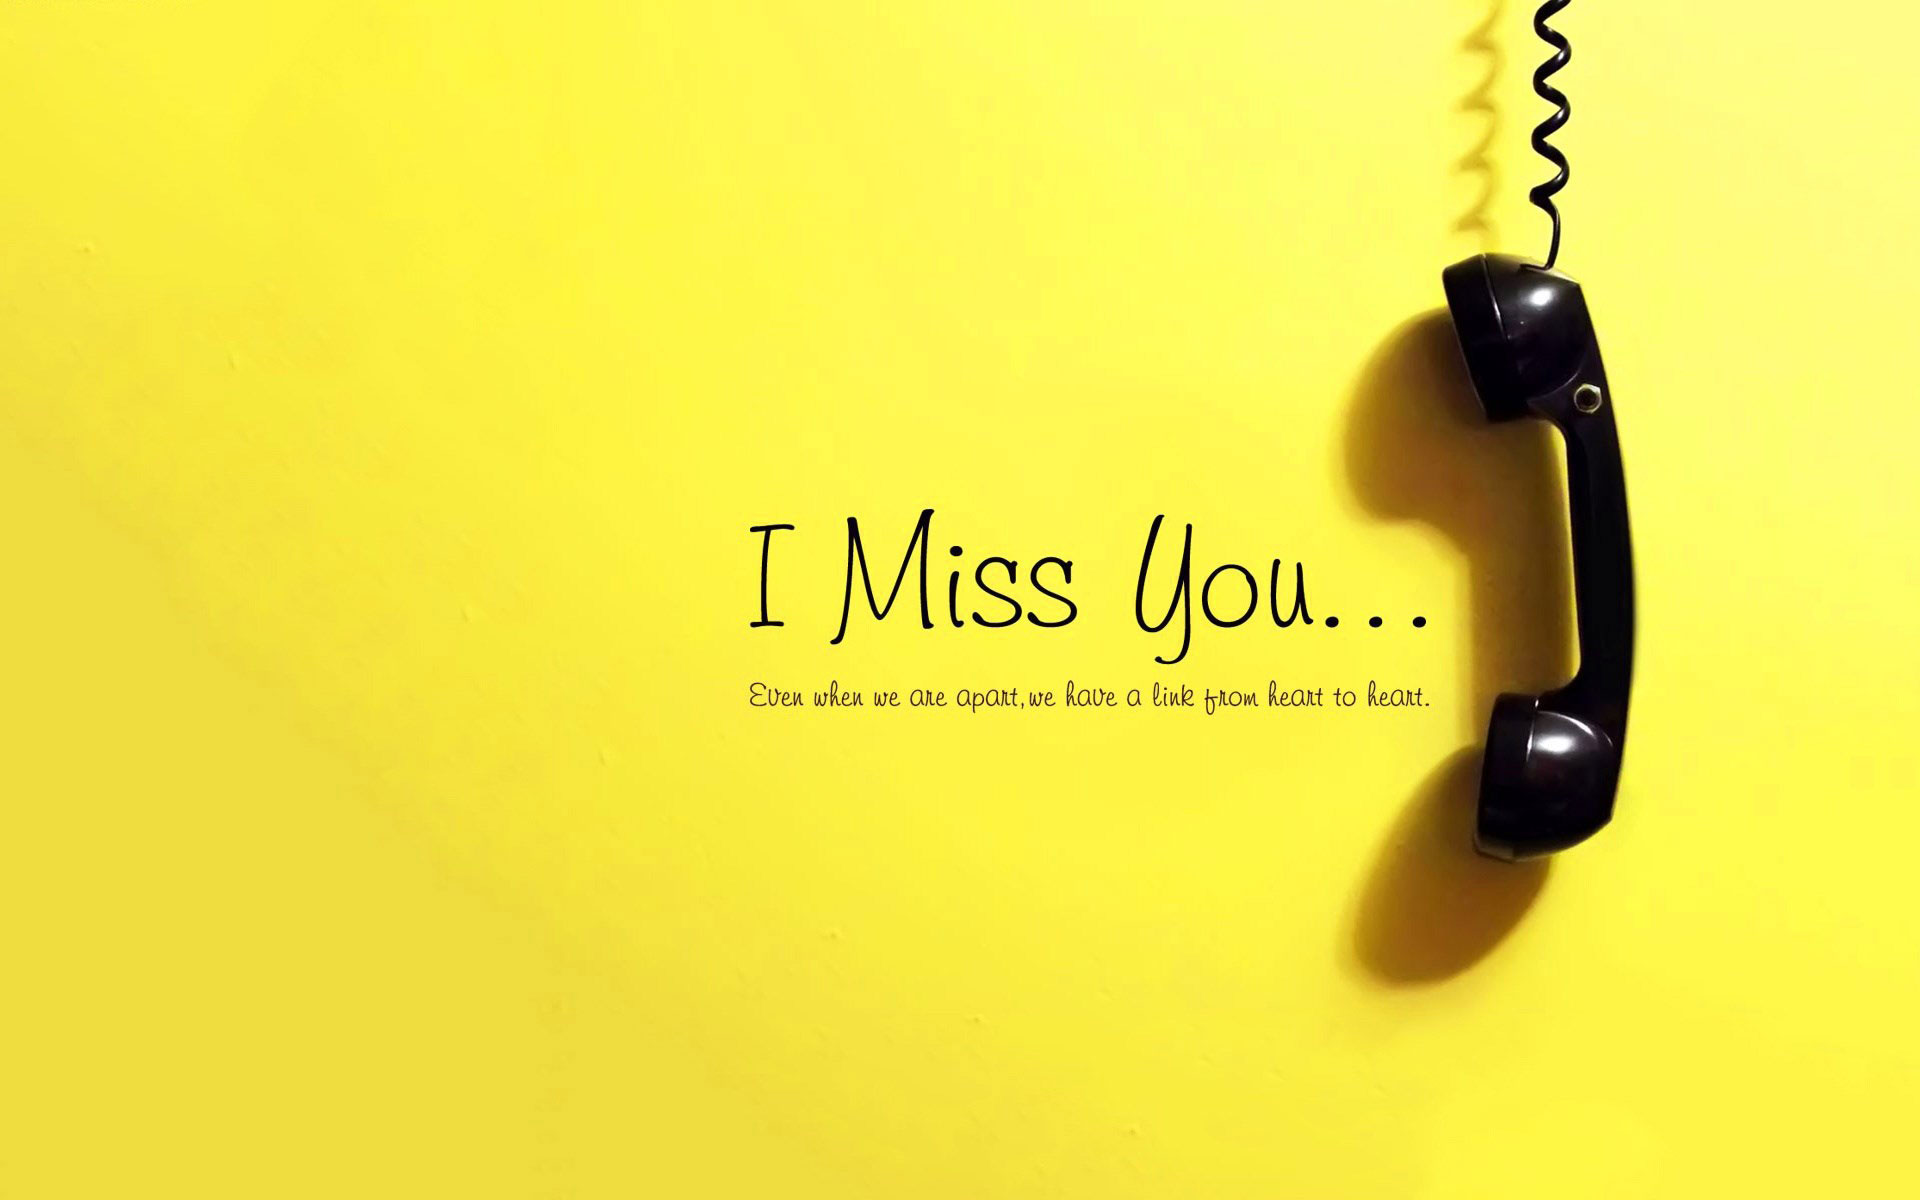 Good Wallpaper Love Miss You - i-miss-you-wallpaper1  Perfect Image Reference_55662.jpg?92dbd0\u002692dbd0